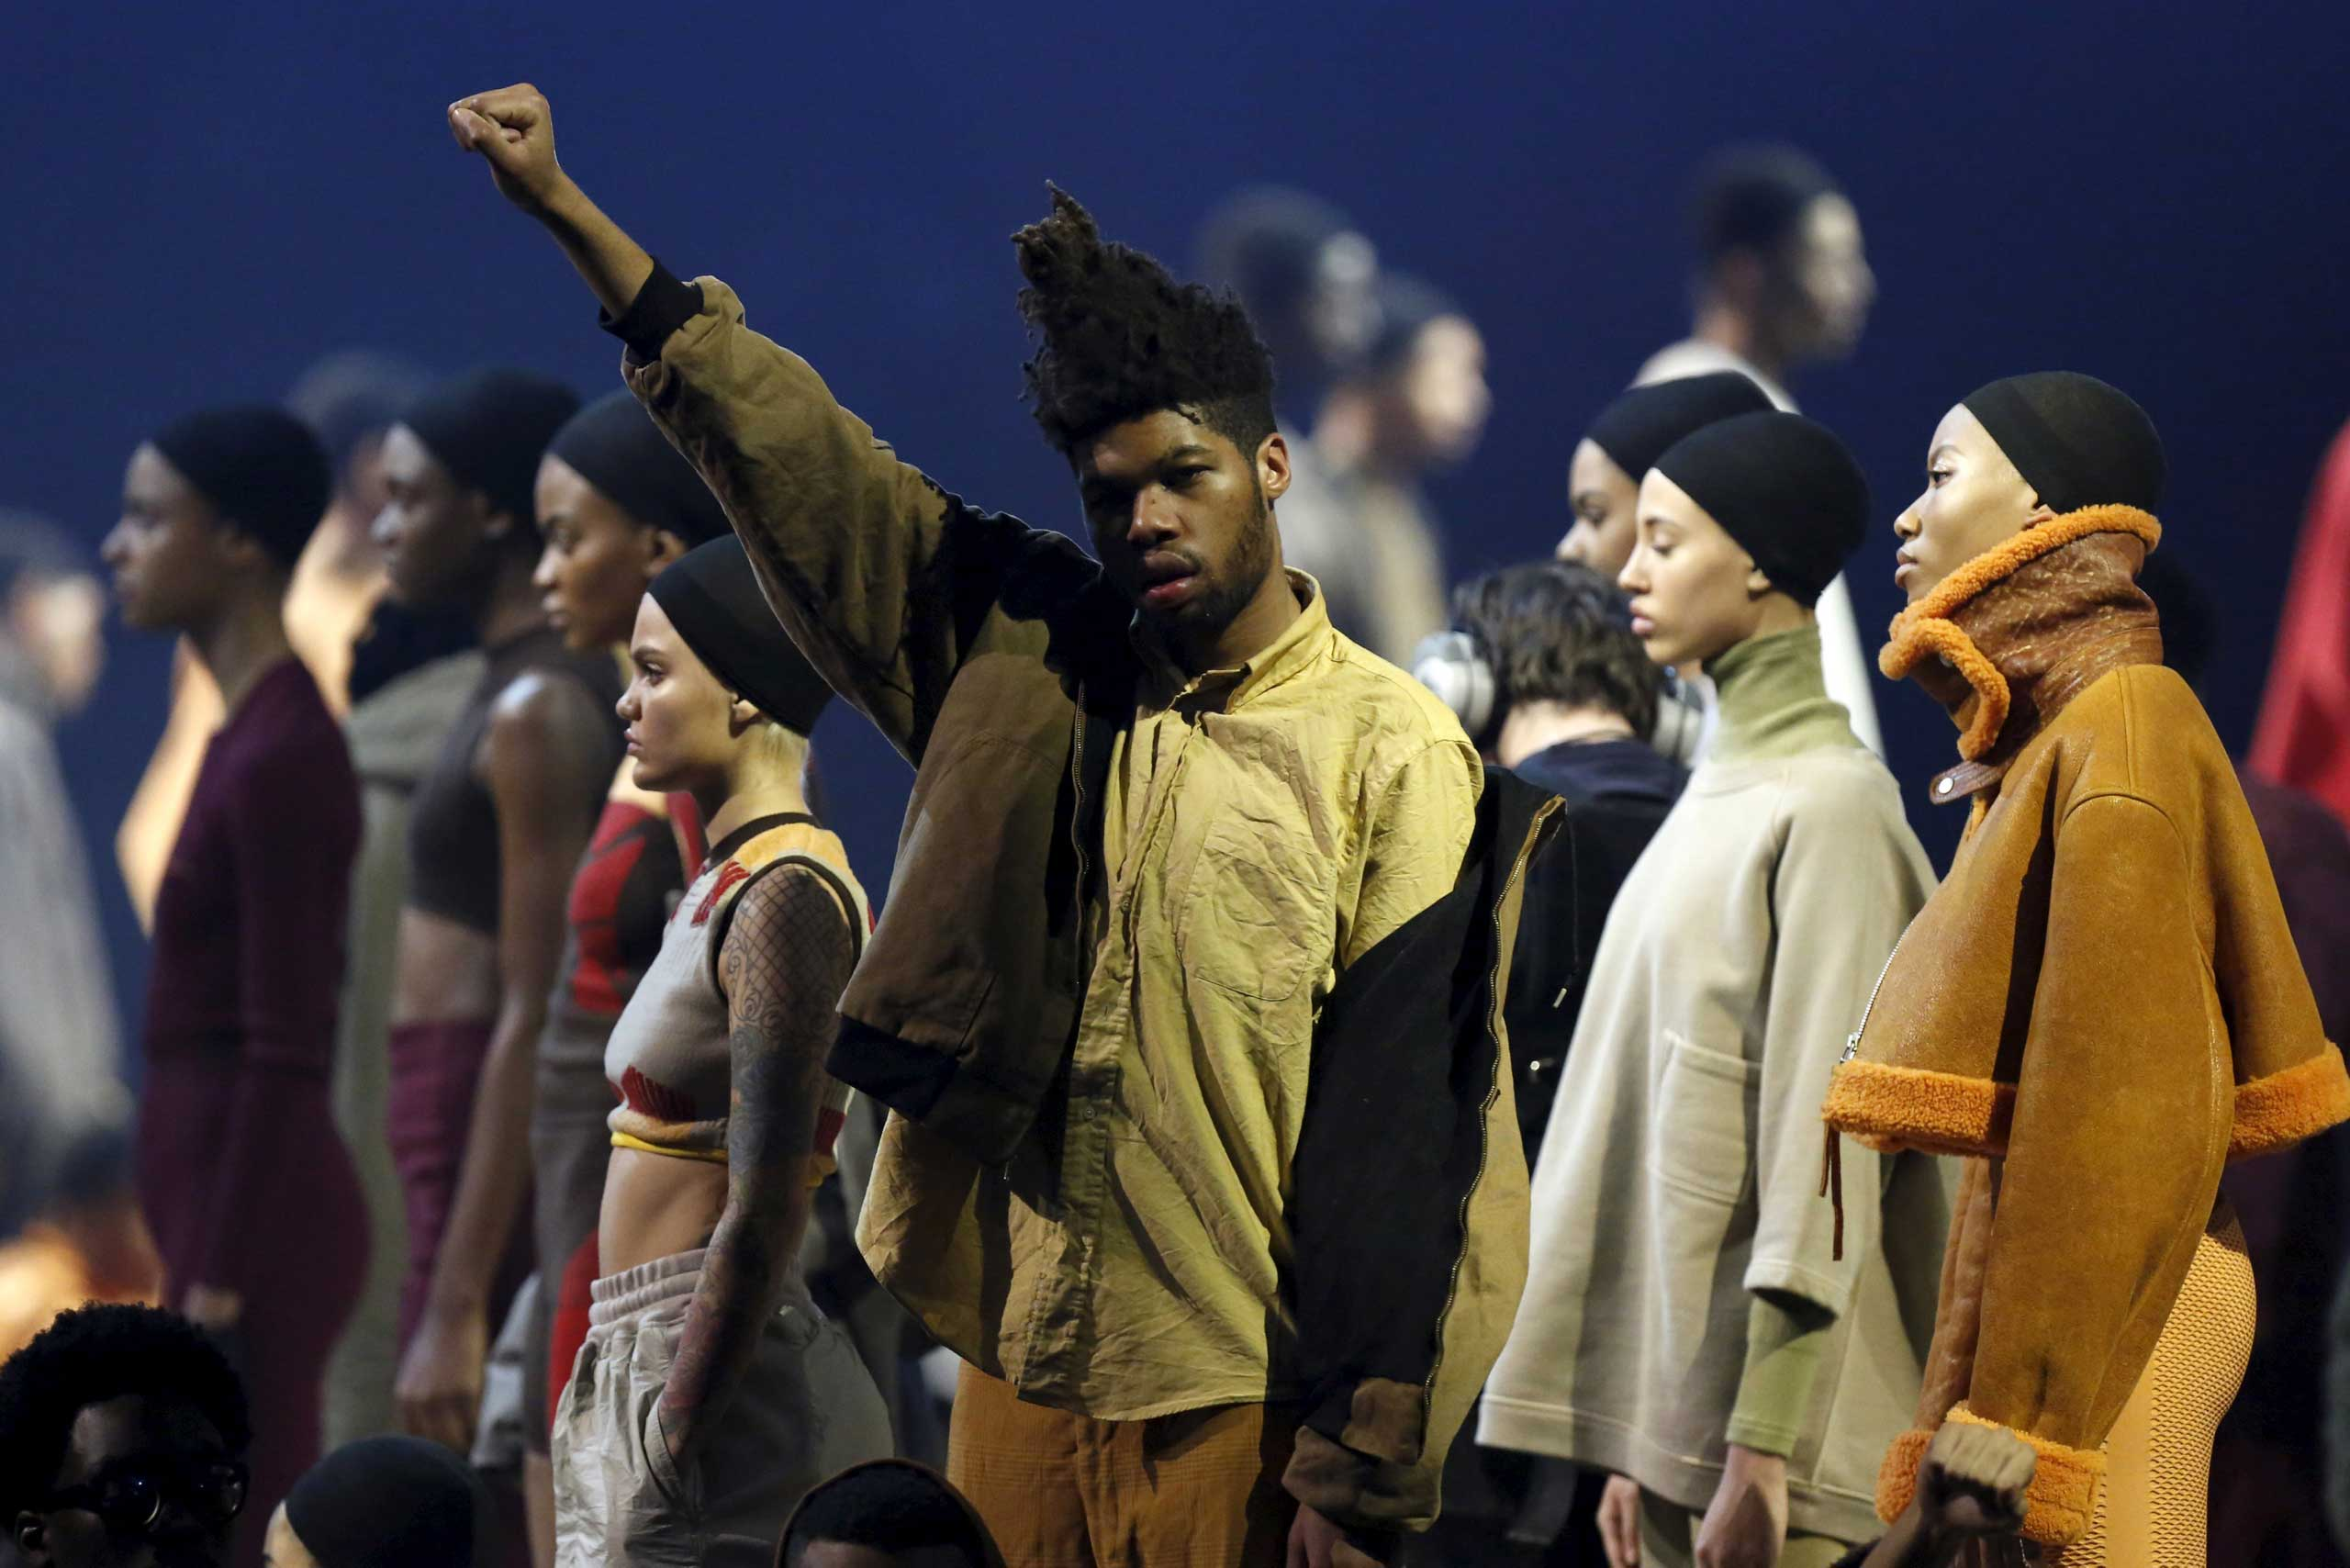 Models present creations at Kanye West's Yeezy Season 3 fashion show while listening to the artist's latest album  The Life of Pablo  at Madison Square Garden, Feb. 11, 2016.